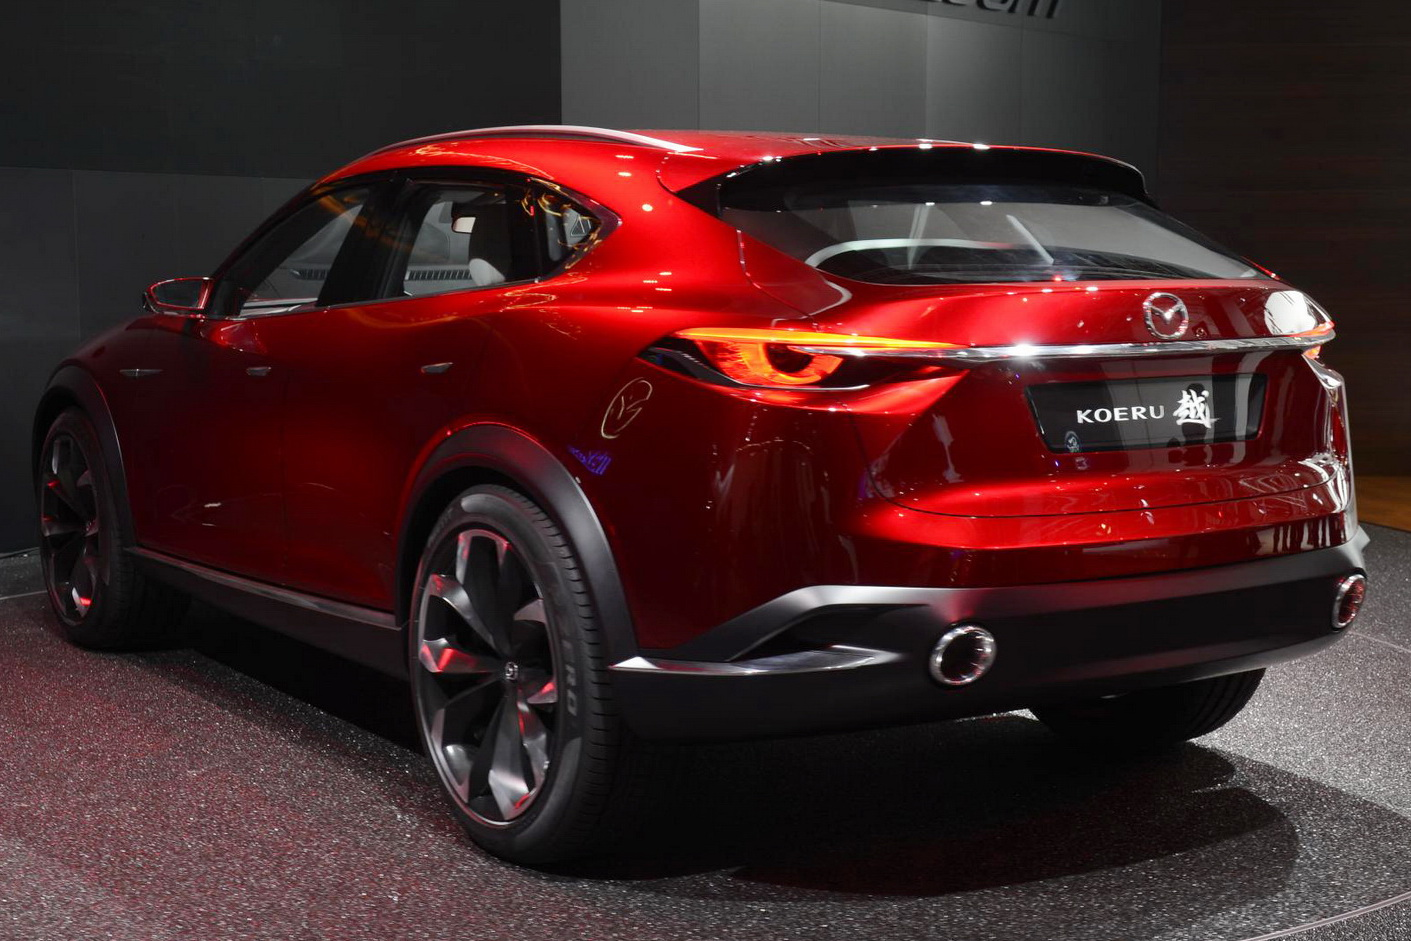 visual comparison: mazda cx-4 vs koeru concept